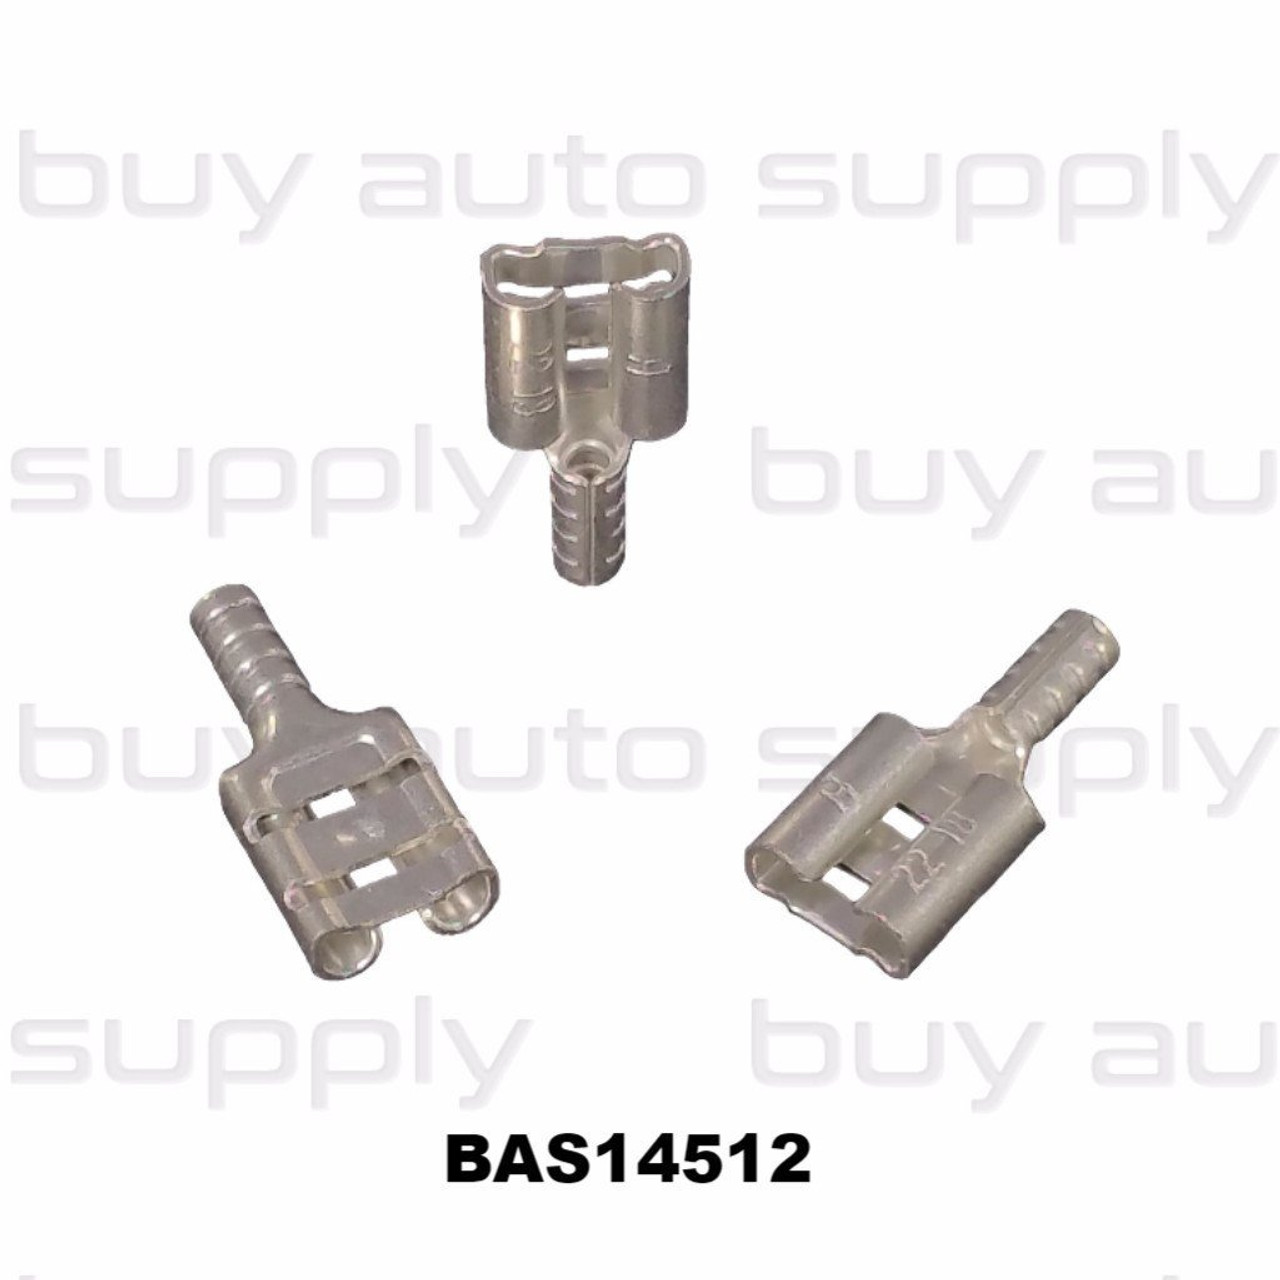 Female Quick Connect Terminal (Non-Insulated) 22-18 - BAS14512 - from Buy Auto Supply